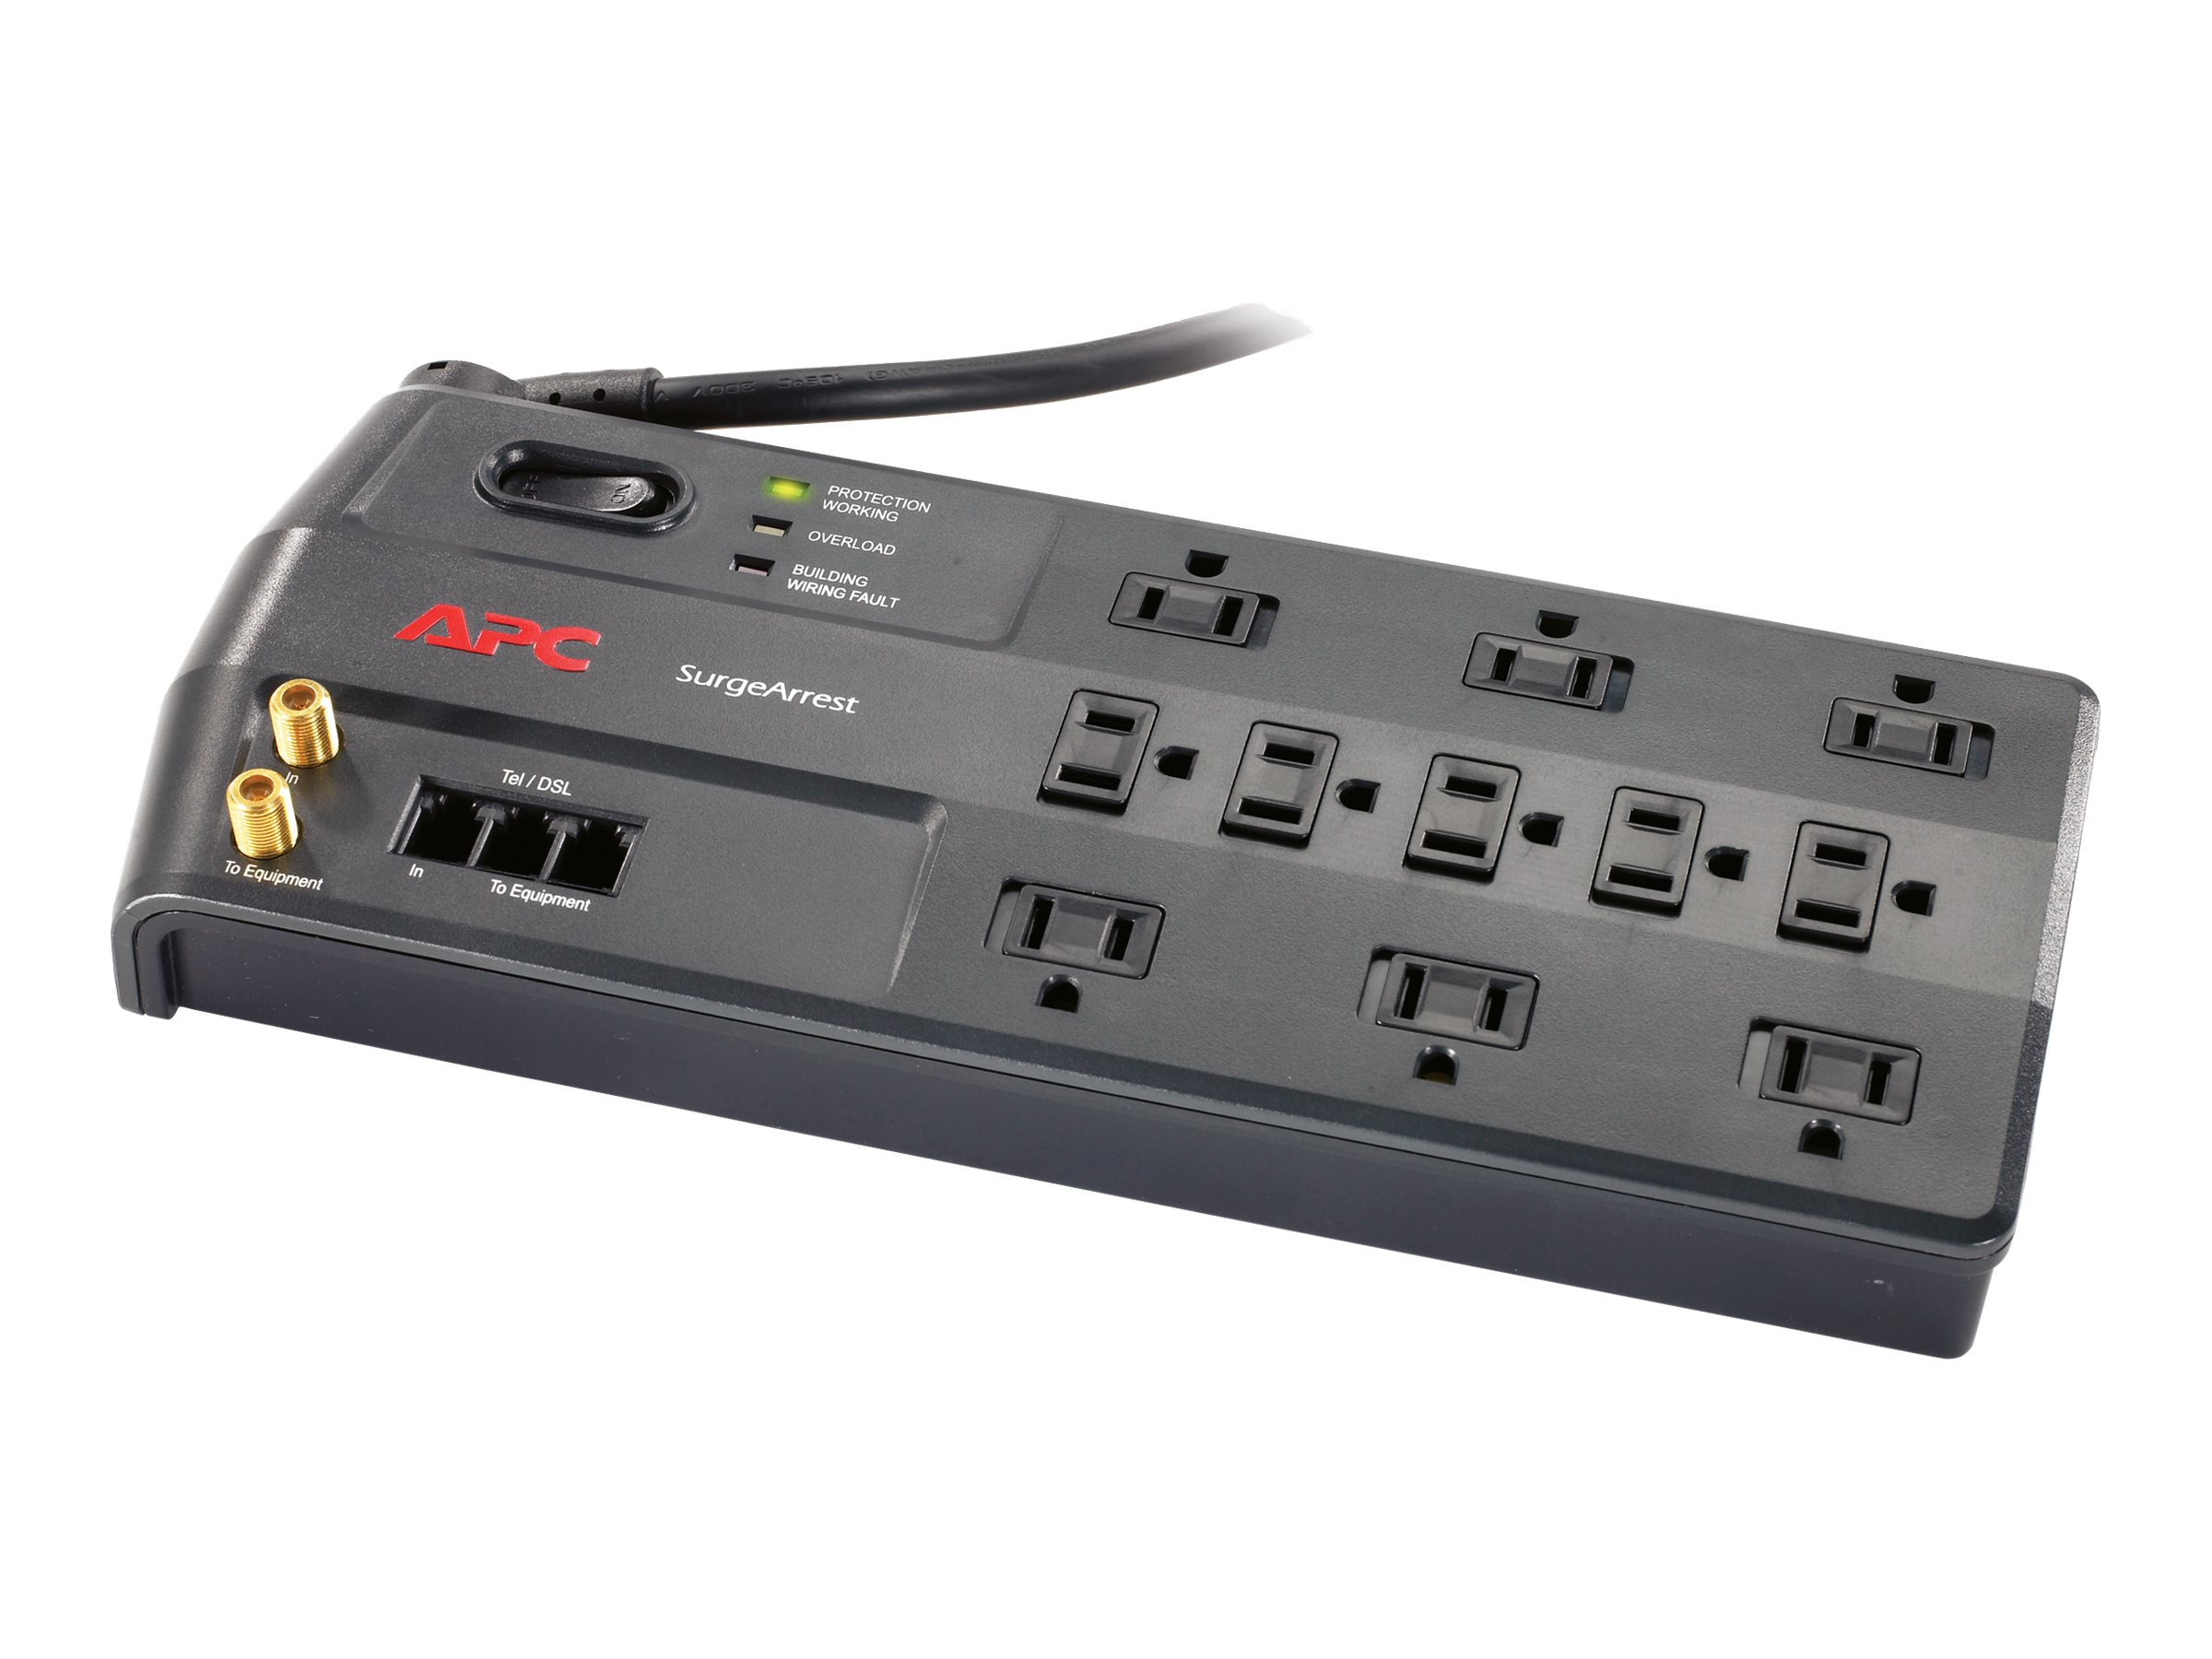 APC Performance SurgeArrest, 2030 Joule, Tel Splitter, Coax, (11) Outlets, P11VT3, 8342144, Surge Suppressors